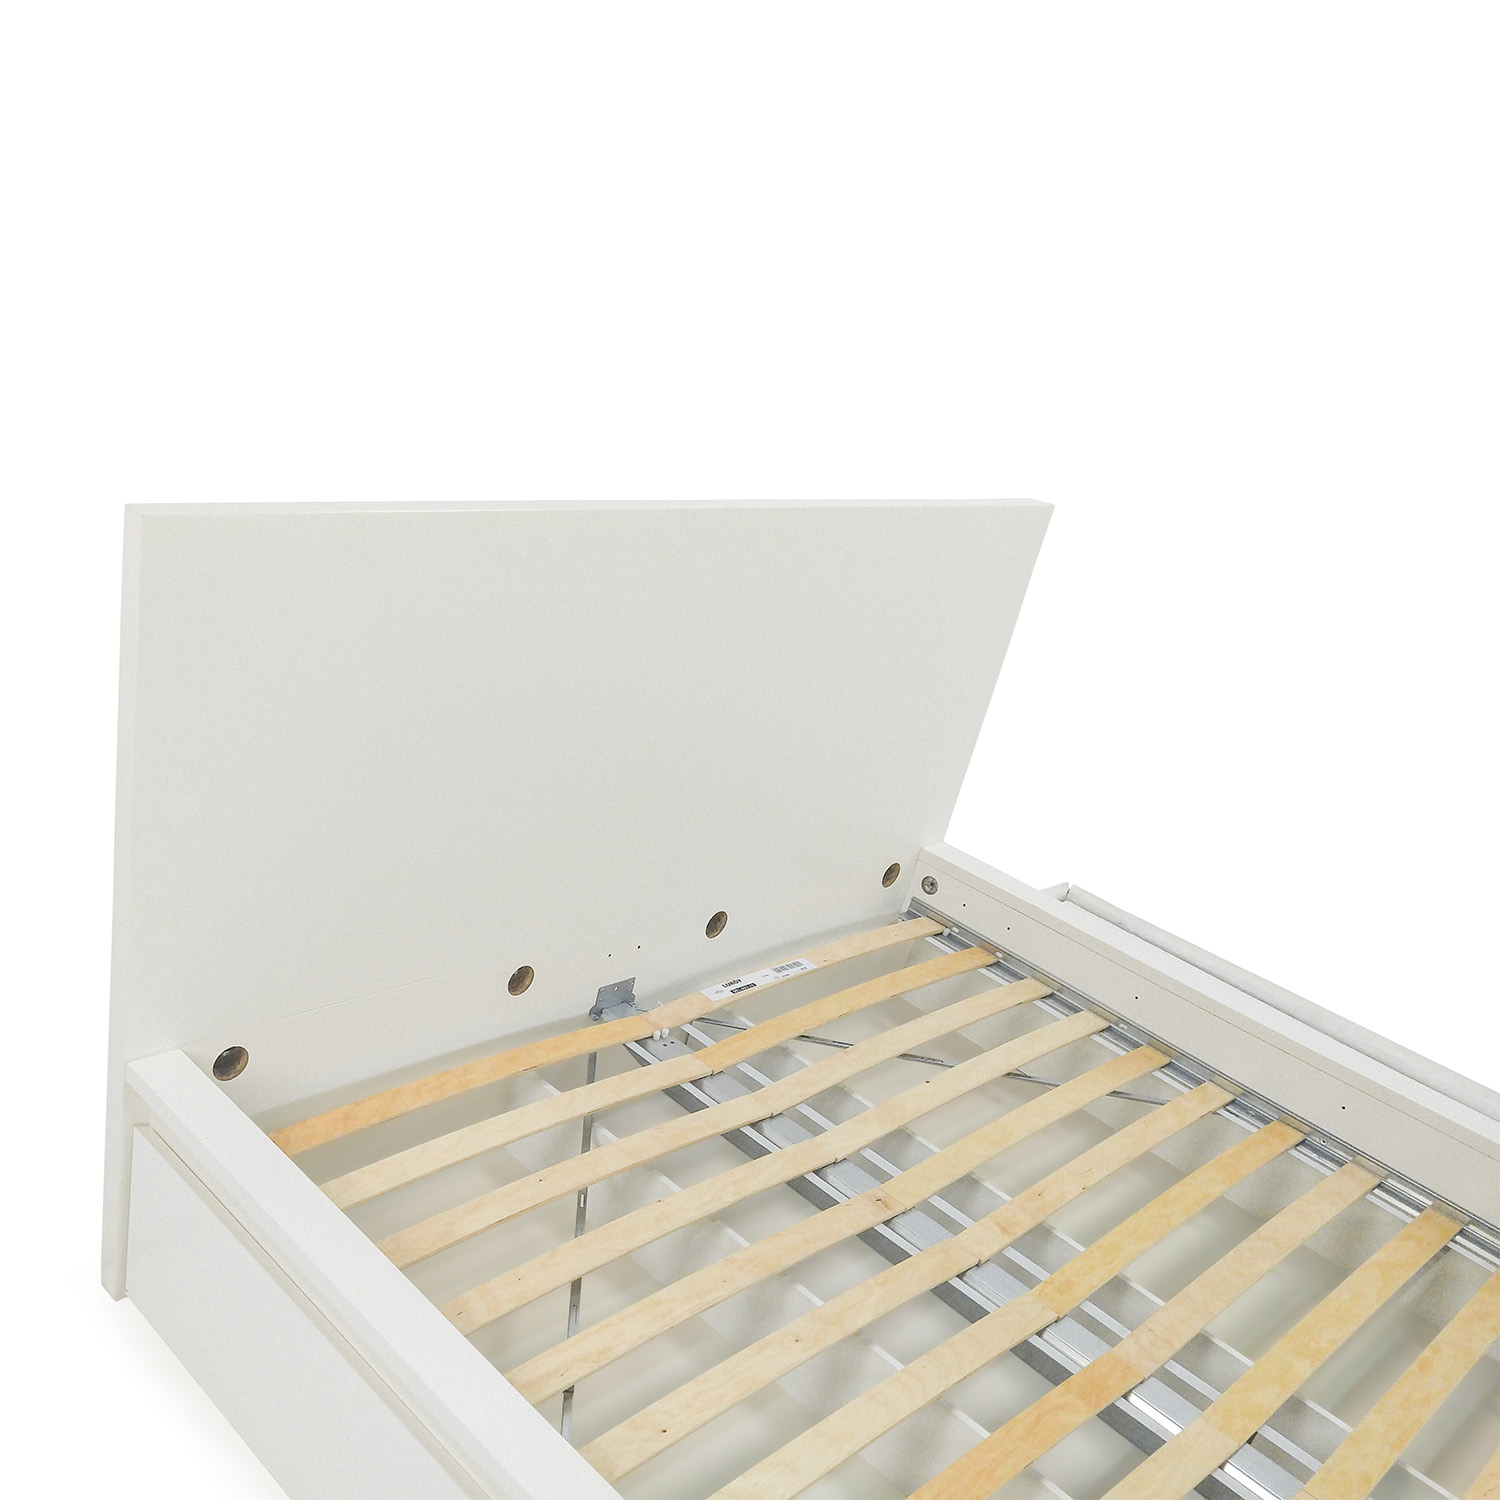 49 Off Ikea Queen Bed Frame With Storage Beds